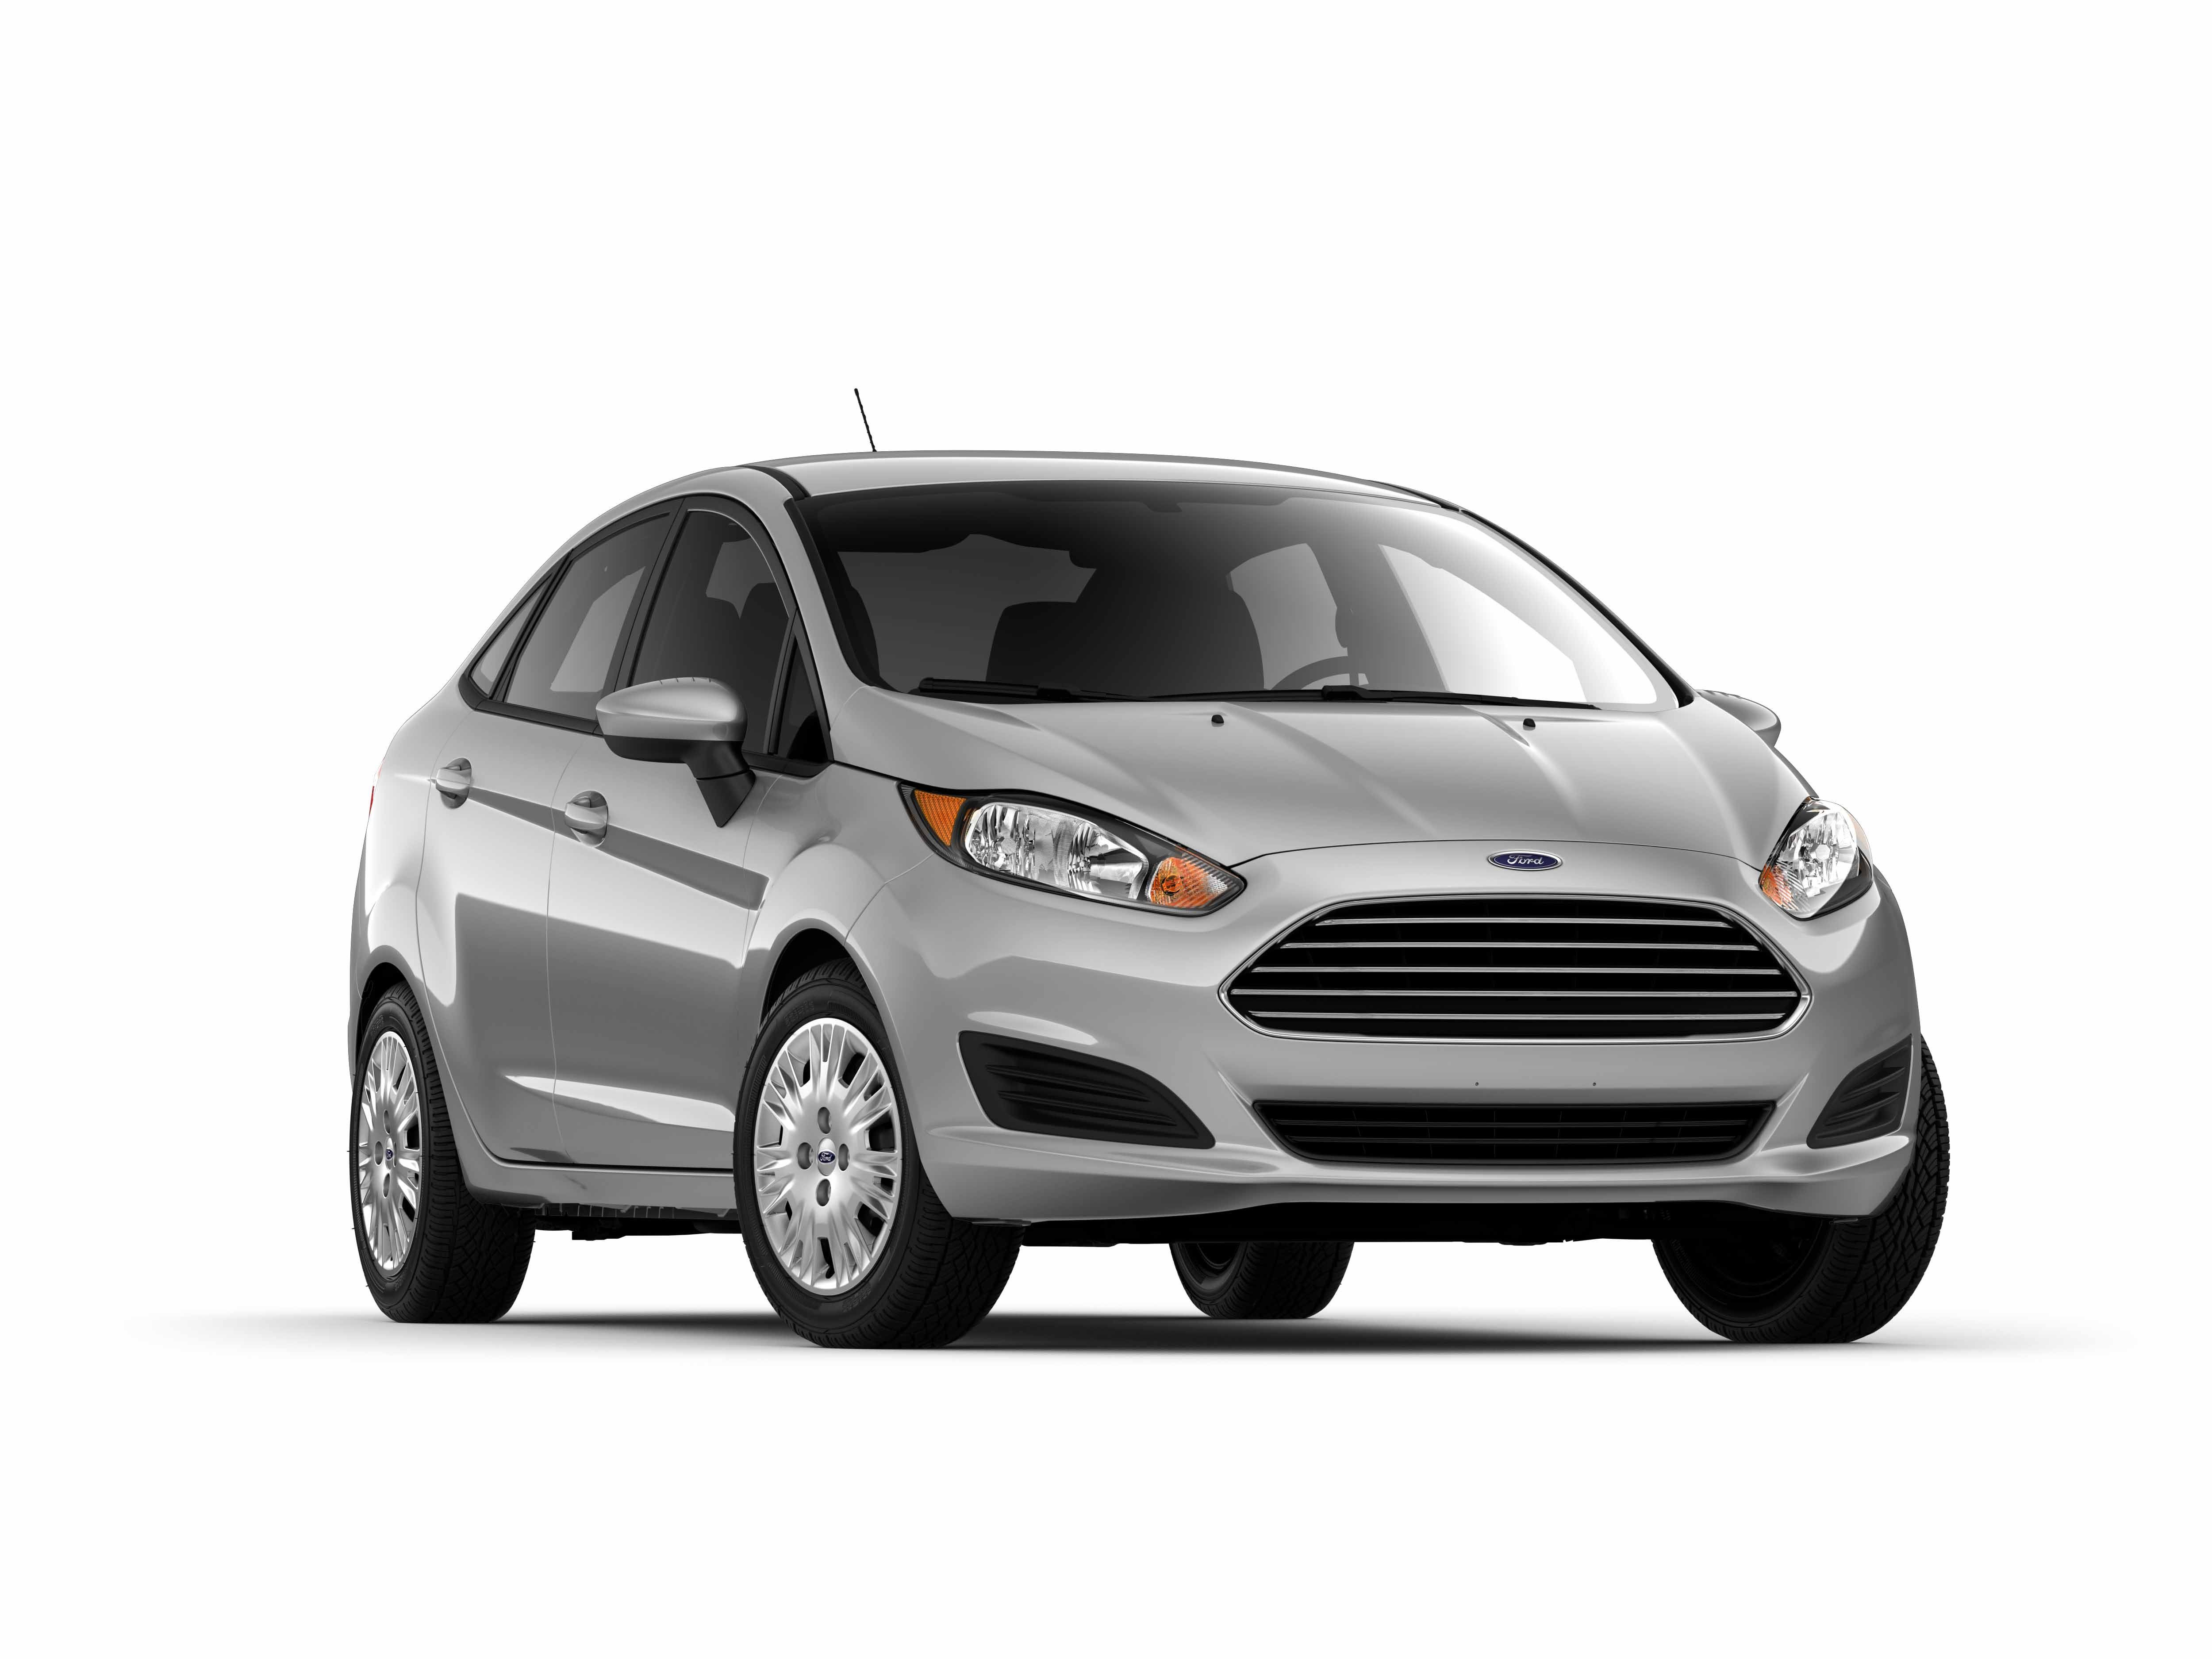 New 2015 ford fiesta sedan high resolution wallpaper ford highresolutionwallpaper new2015fordfiestasedan